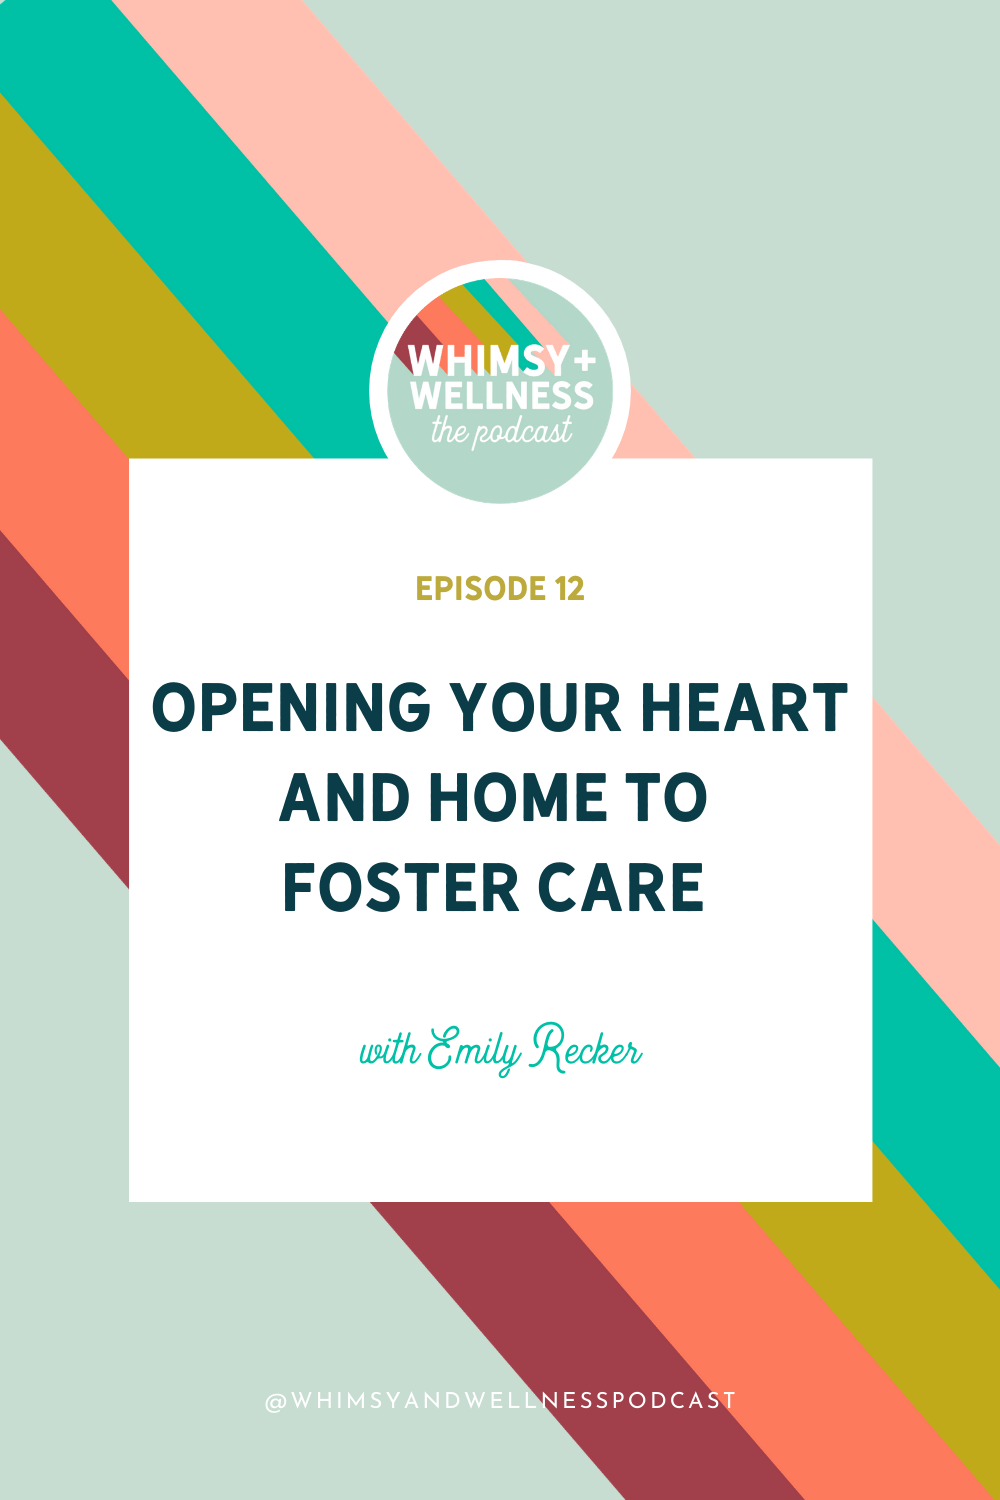 Whimsy + Wellness episode 12 opening your home and heart to fostering